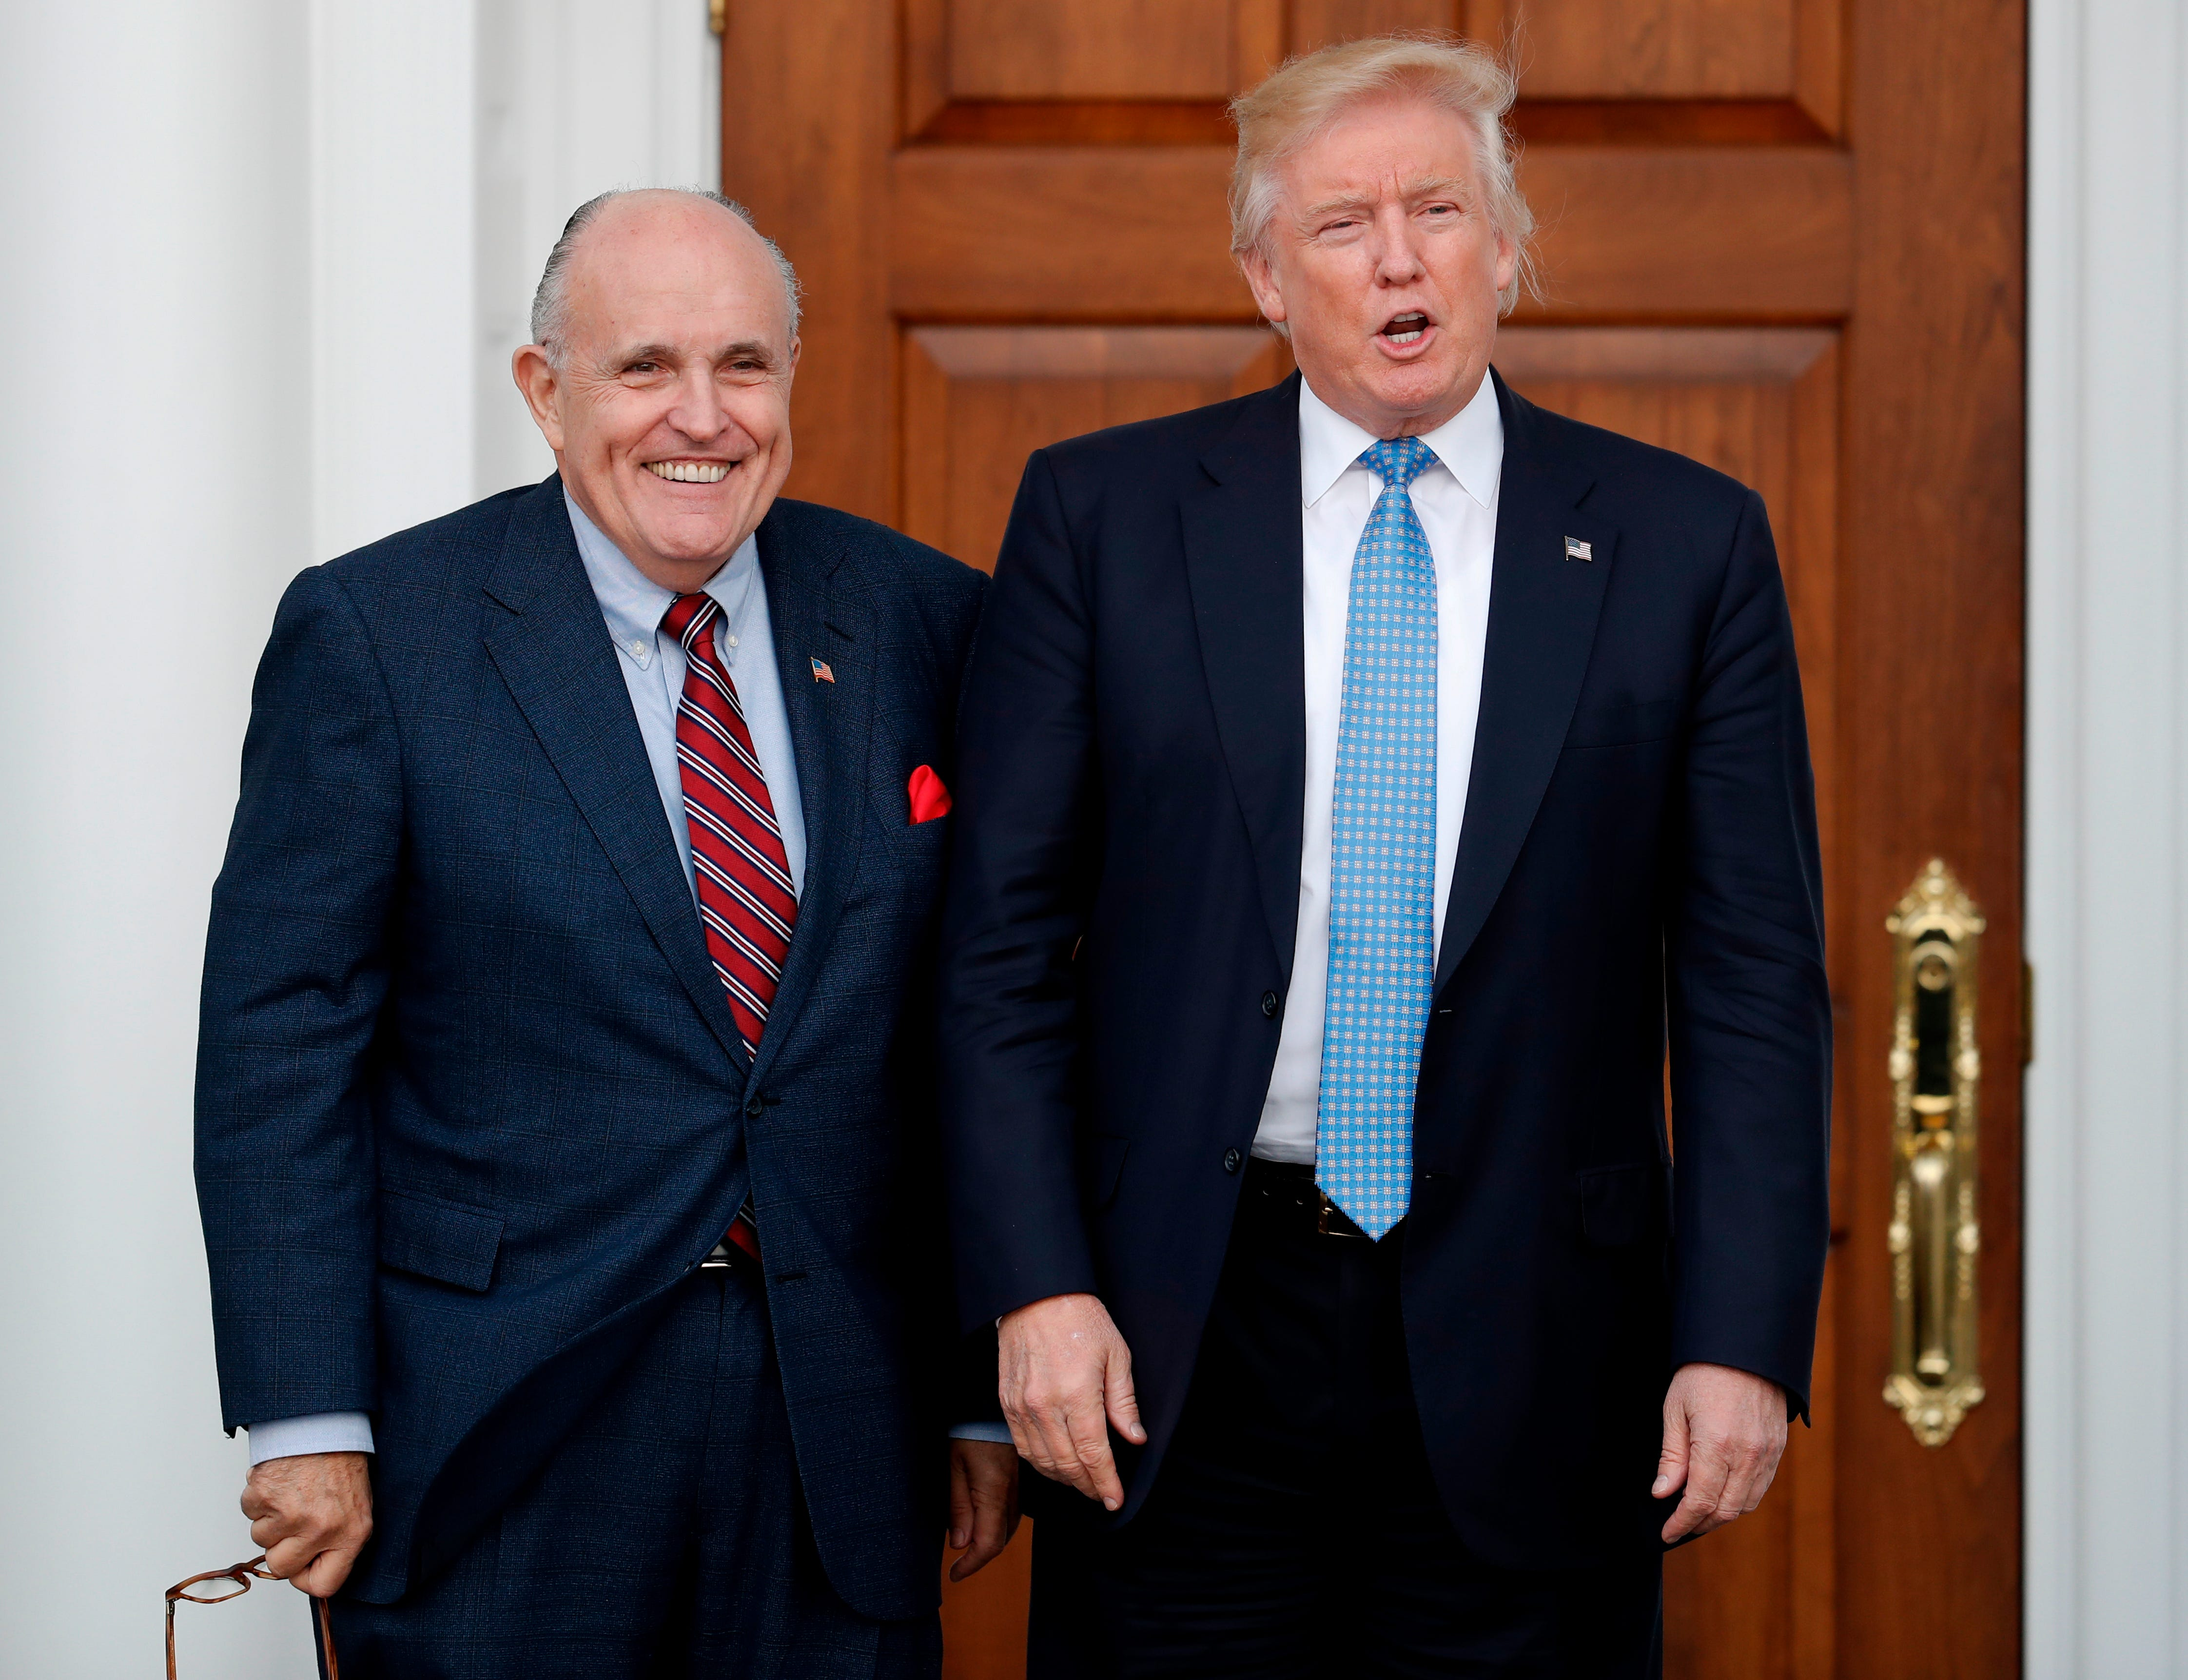 Democrats subpoena Trump's personal attorney, Rudy Giuliani, for Ukraine documents